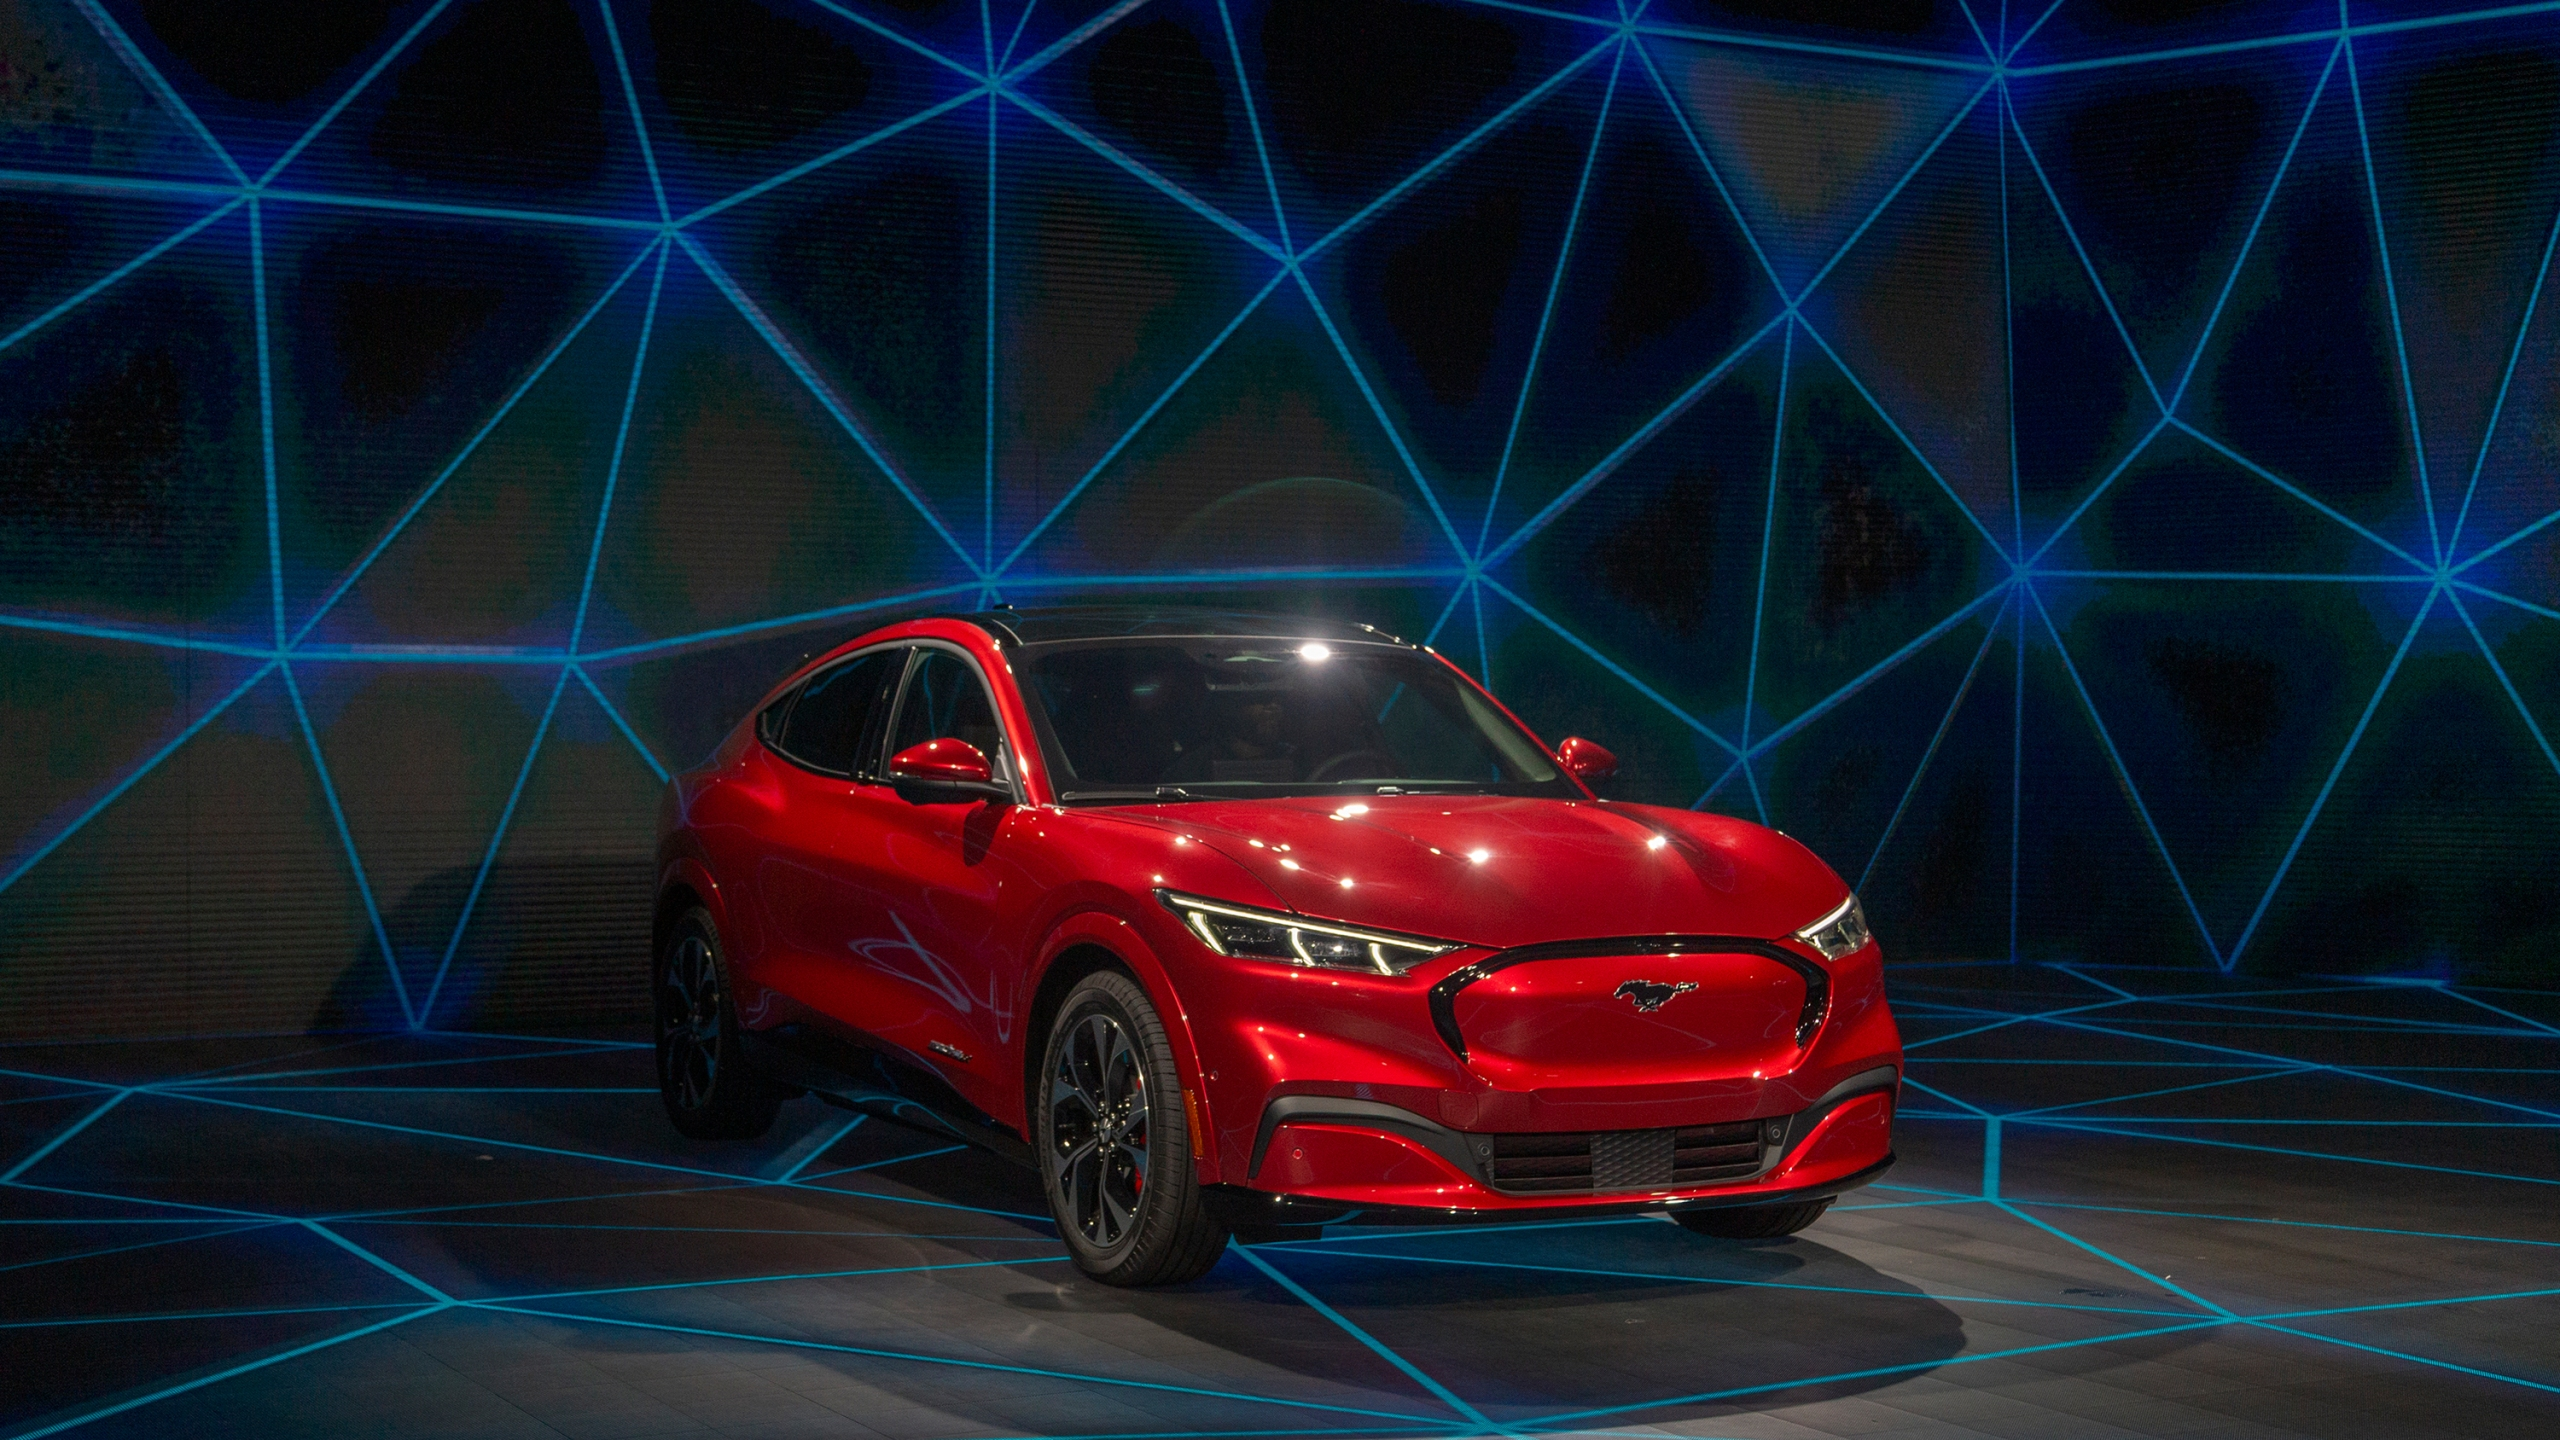 Ford is no longer taking orders for the first edition of its new electric Mustang, the Mach-E. (Credit: David McNew/Getty Images)